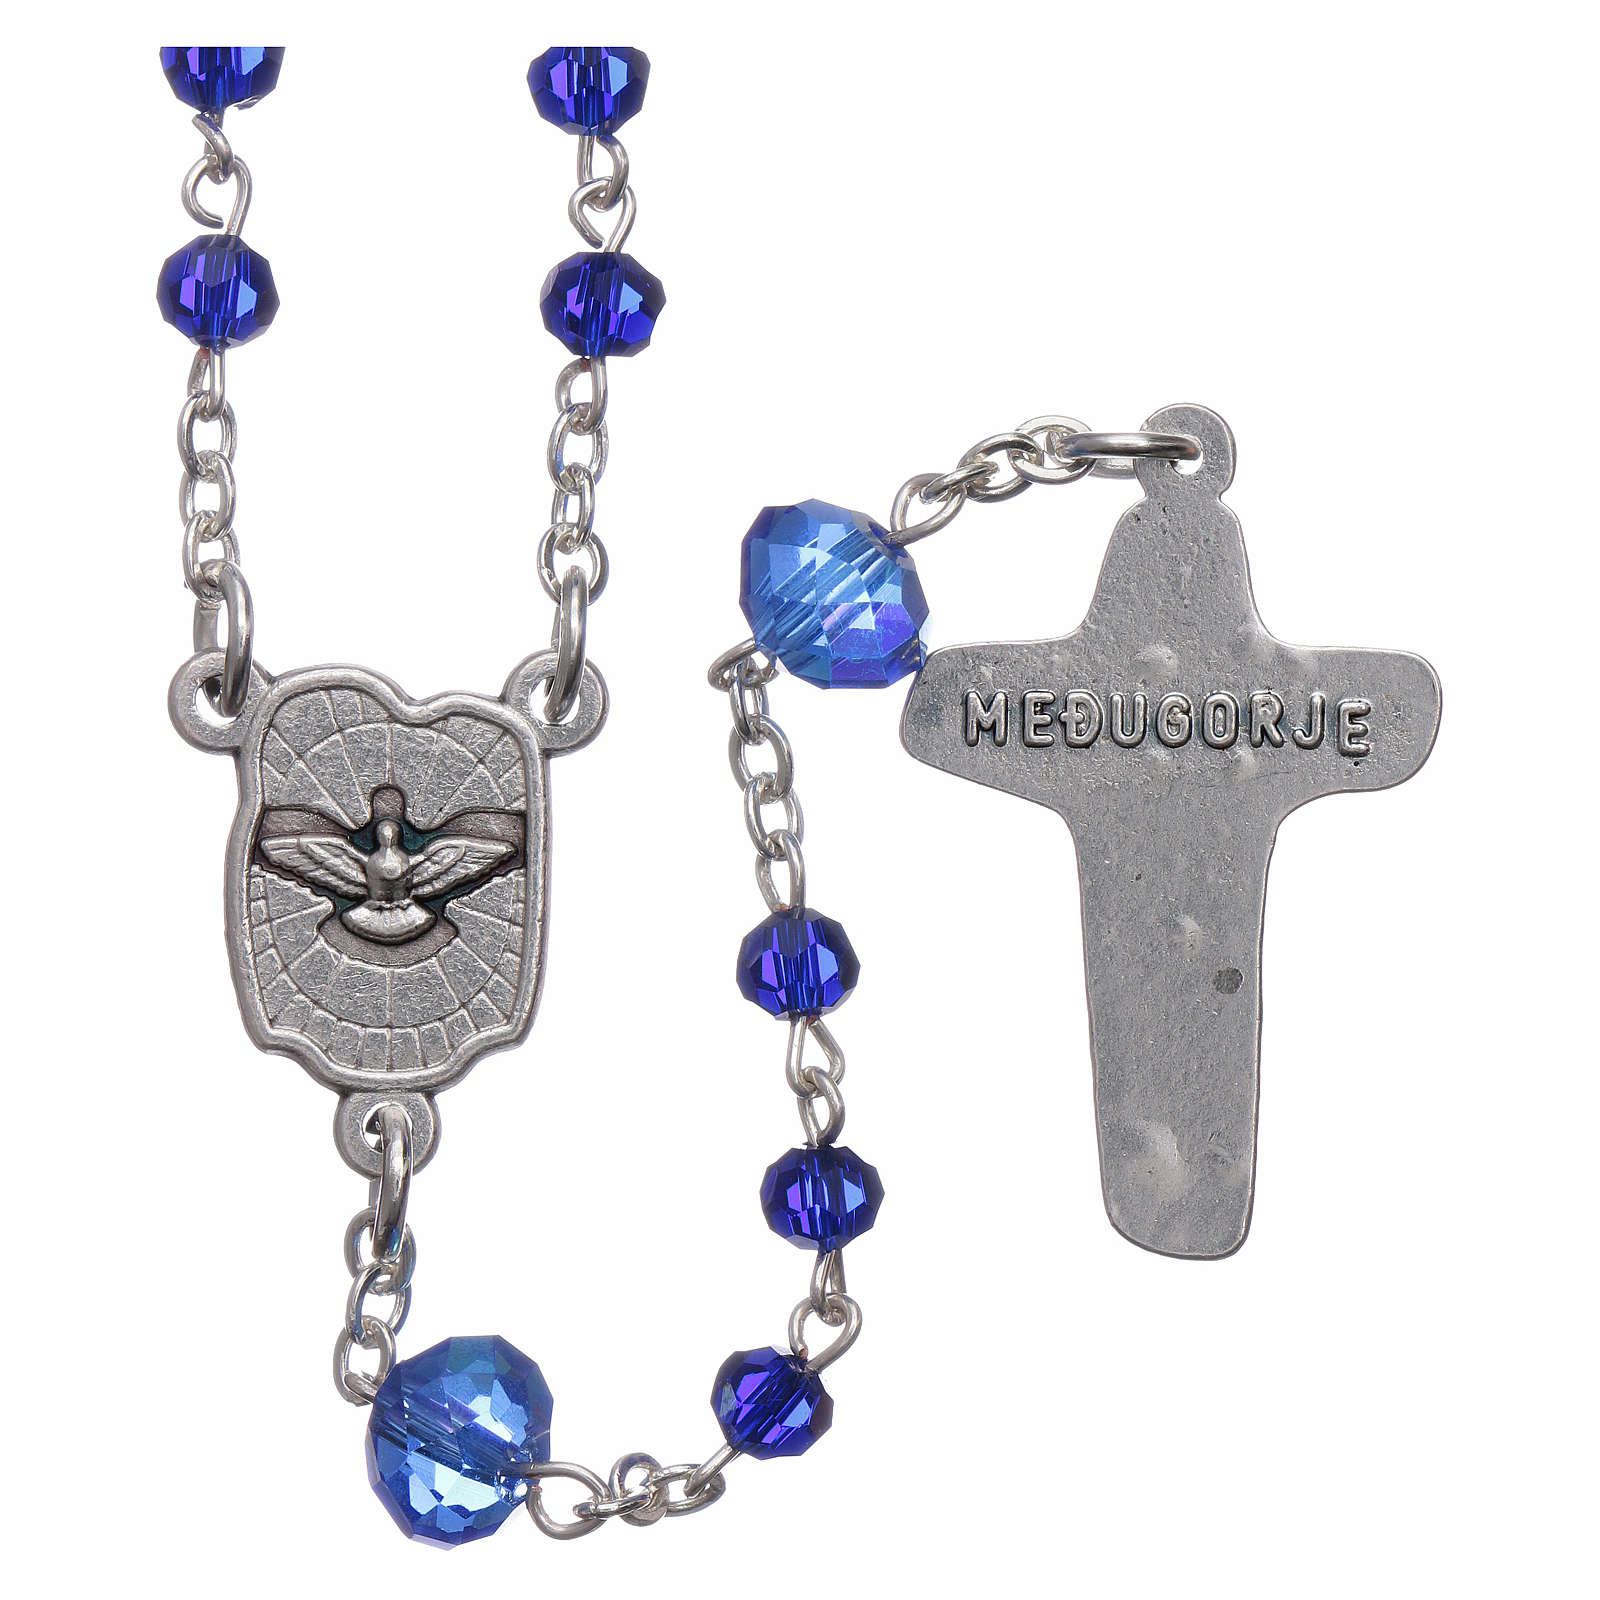 Medjugorje rosary beads in blue crystal with 4 mm grains 4